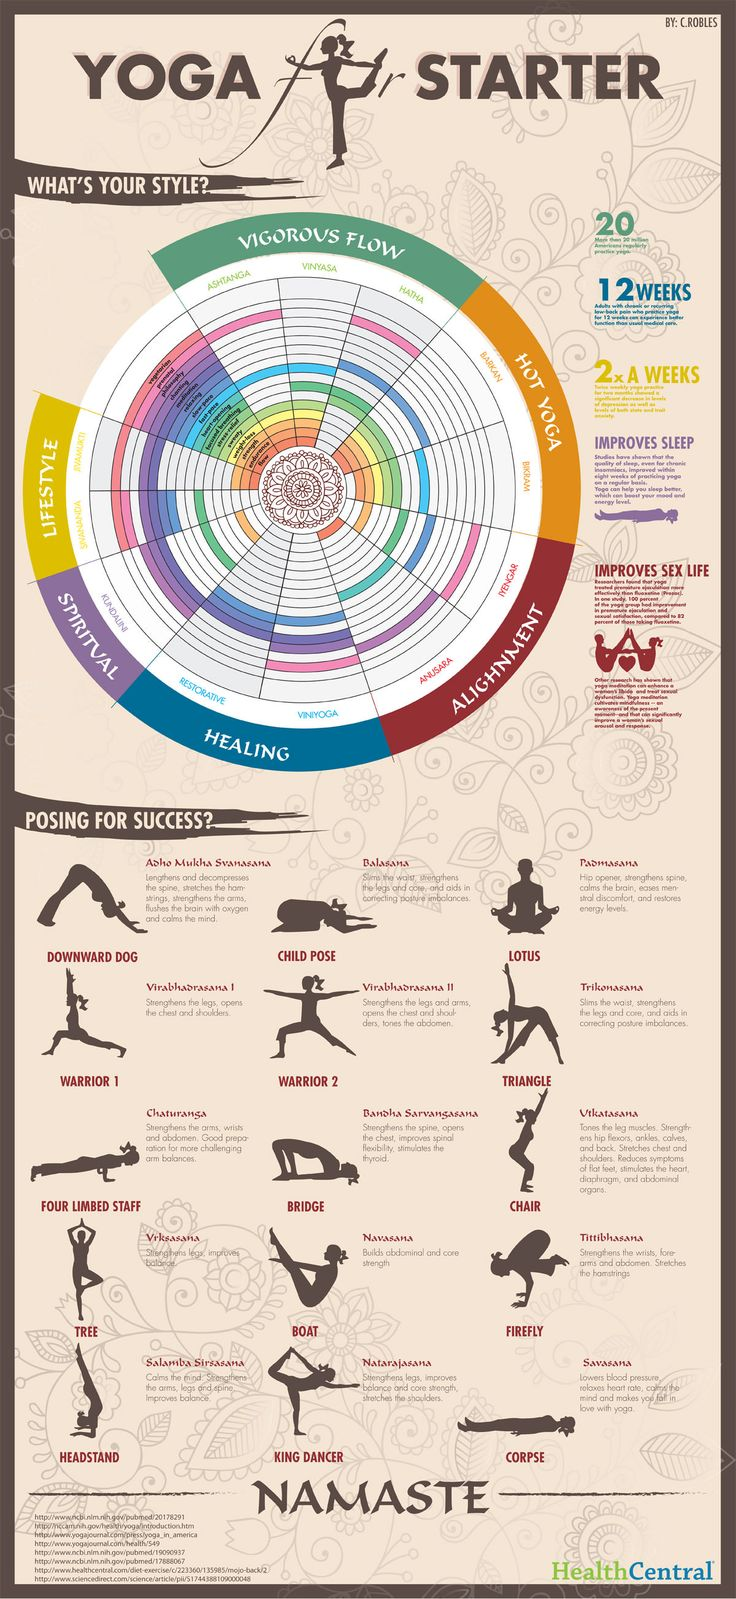 Research Has Proven Yoga Can Improve Balance For Stroke Victims